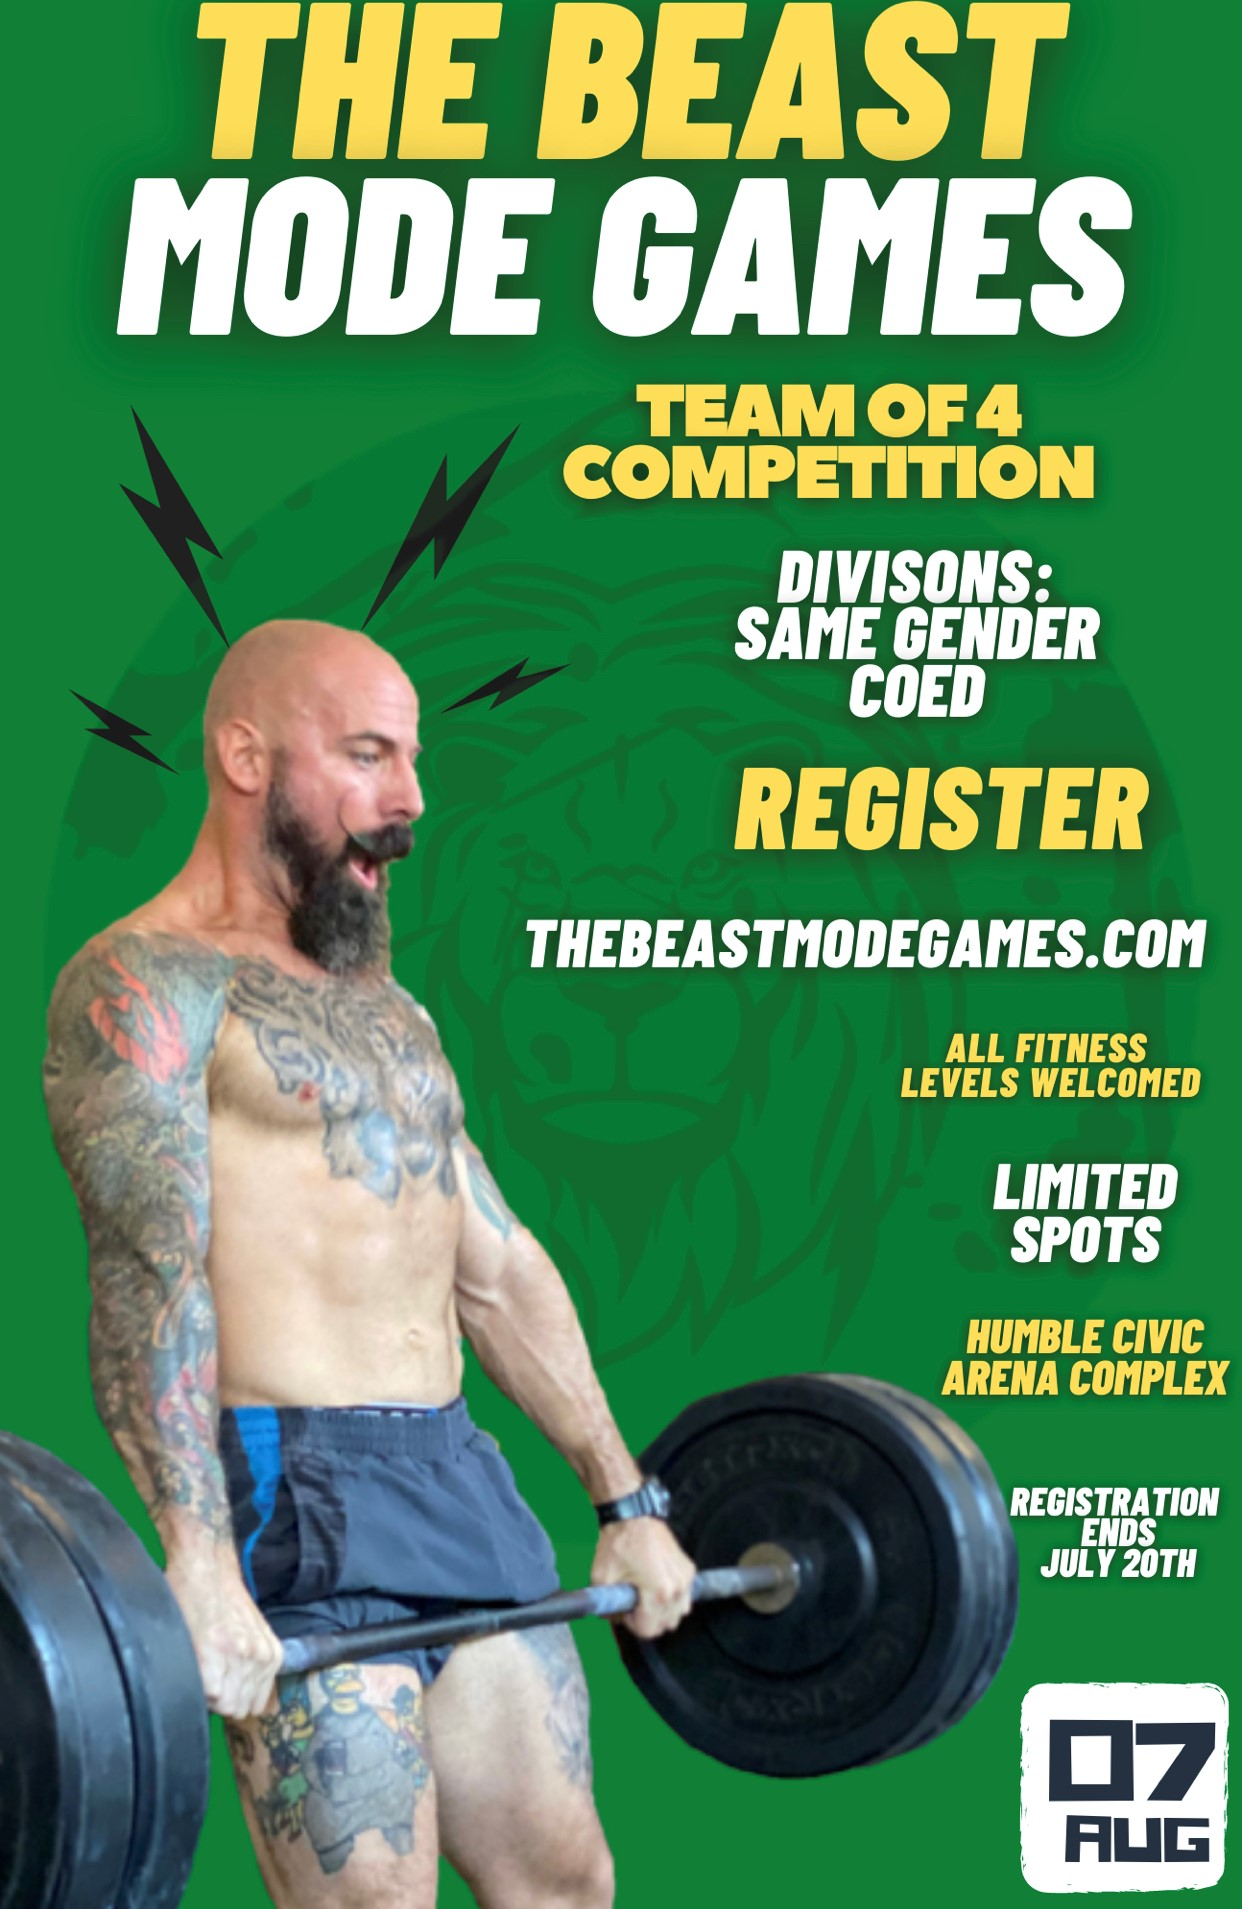 THE BEAST MODE GAMES FITNESS COMPETITION